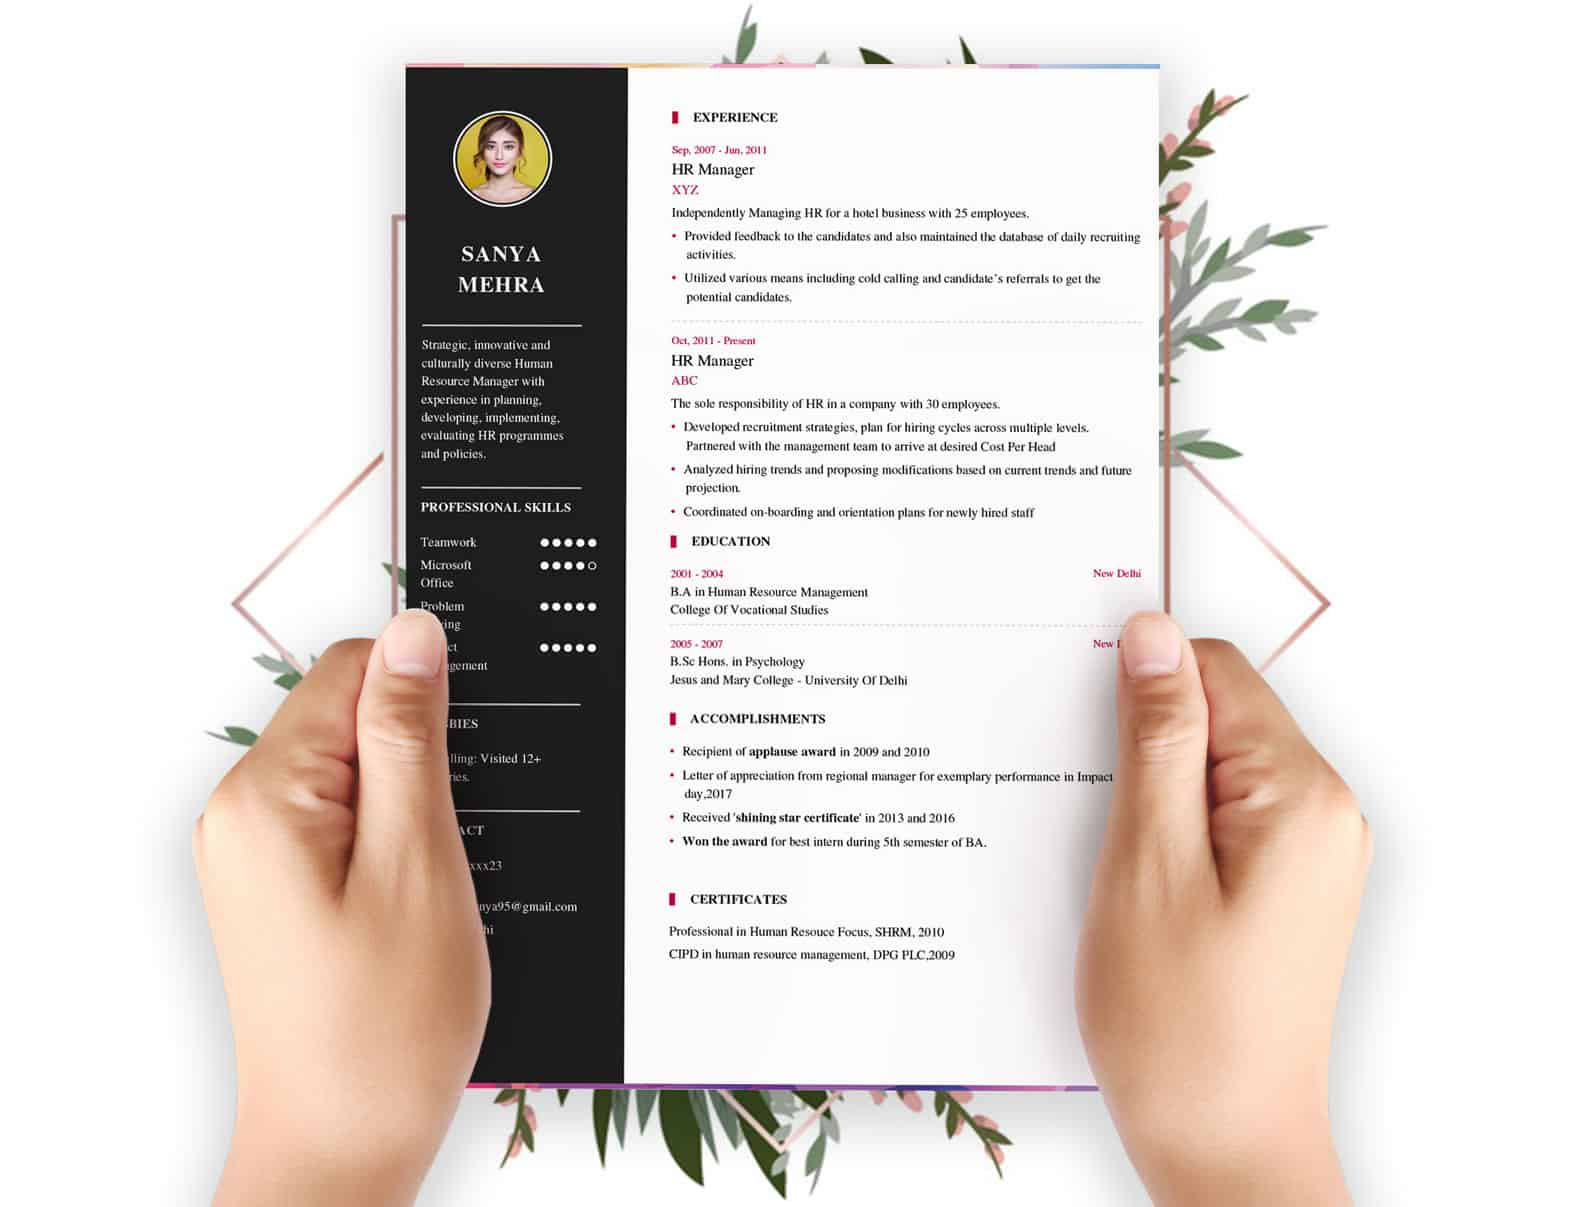 resume builder free latest format technical template for network engineer with ccna Resume Technical Resume Builder